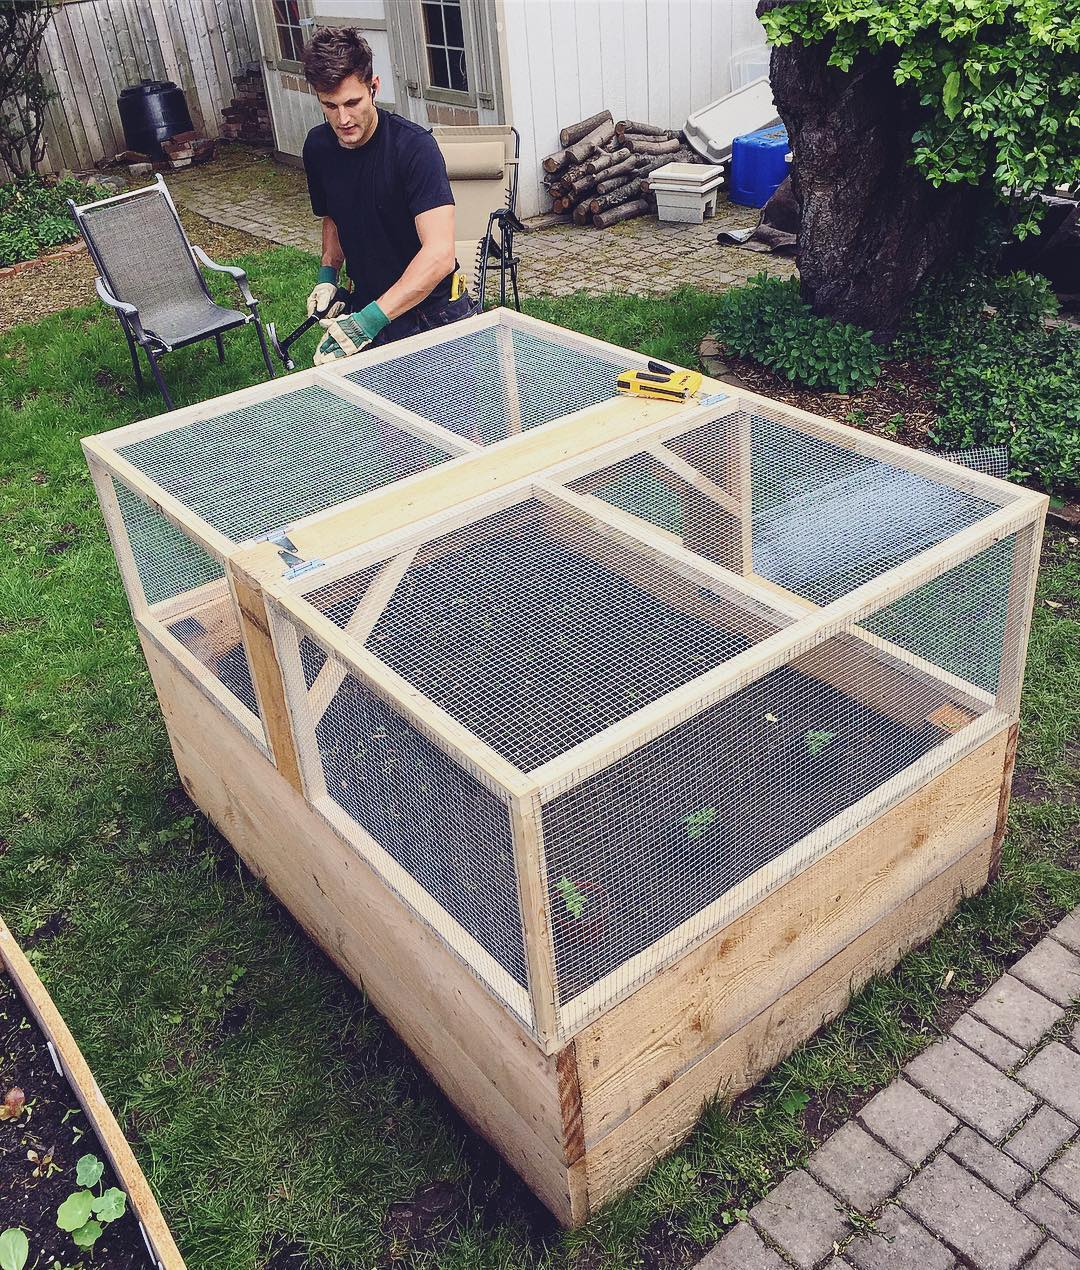 Ig Our Enclosed Raised Bed Is Looking Kickass Now Just